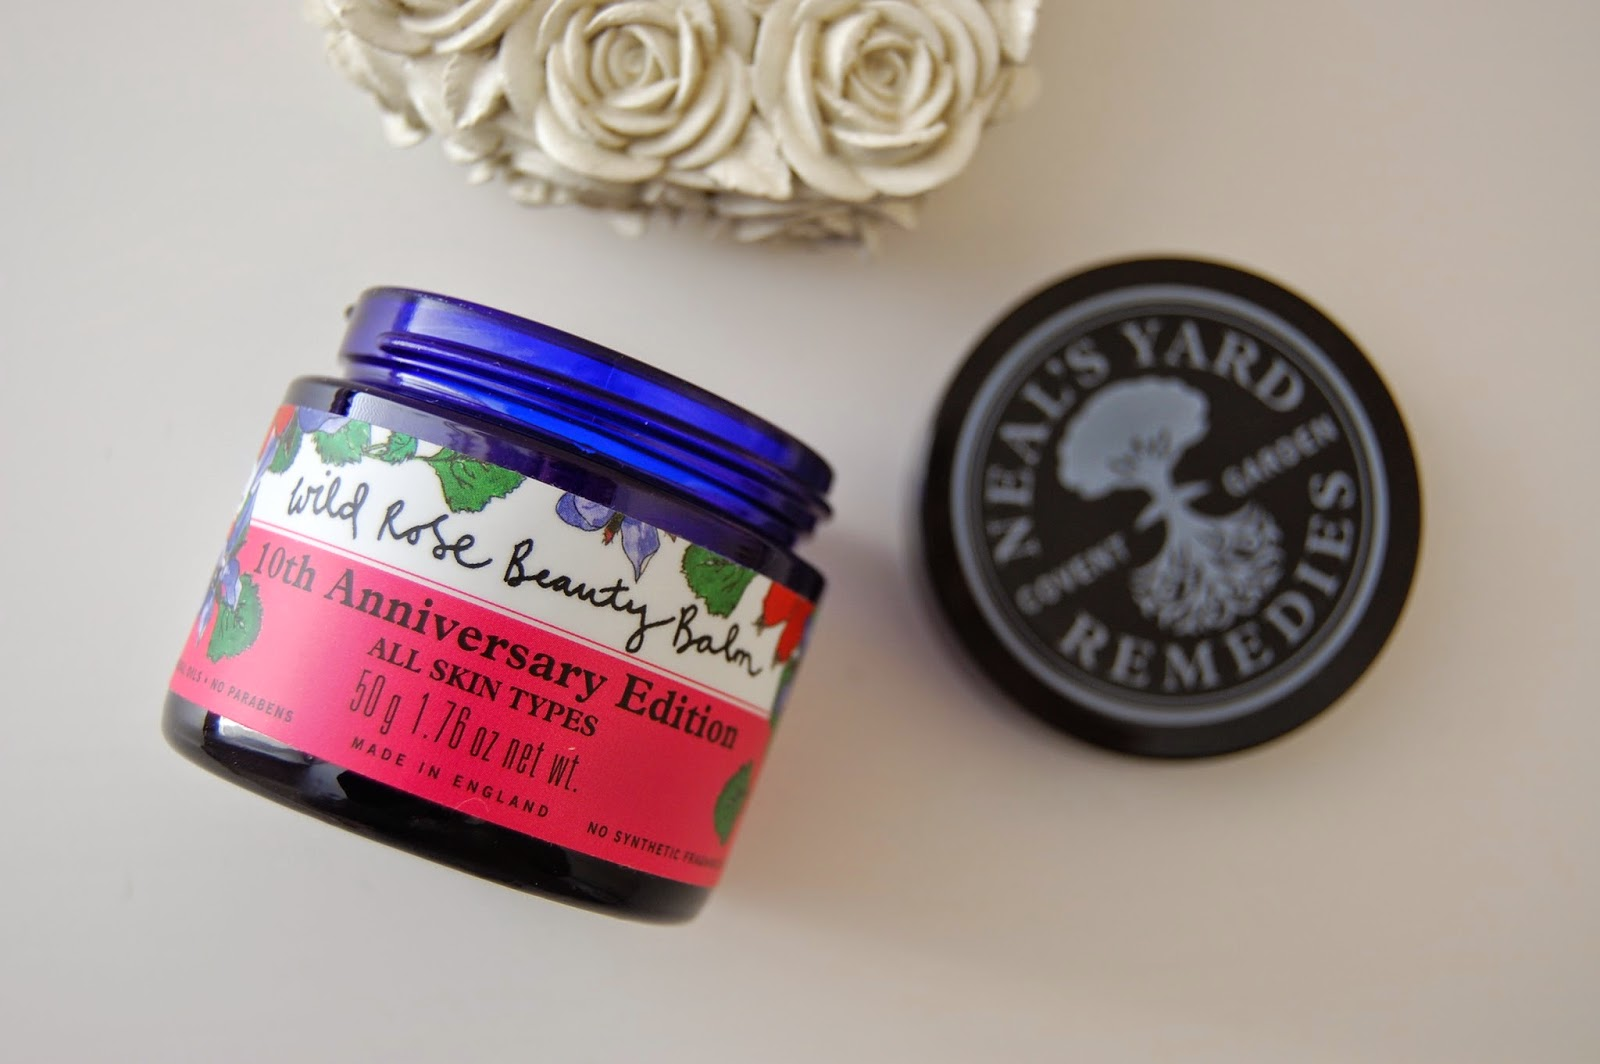 Neals_Yard_Wild_Rose_Beauty_Balm